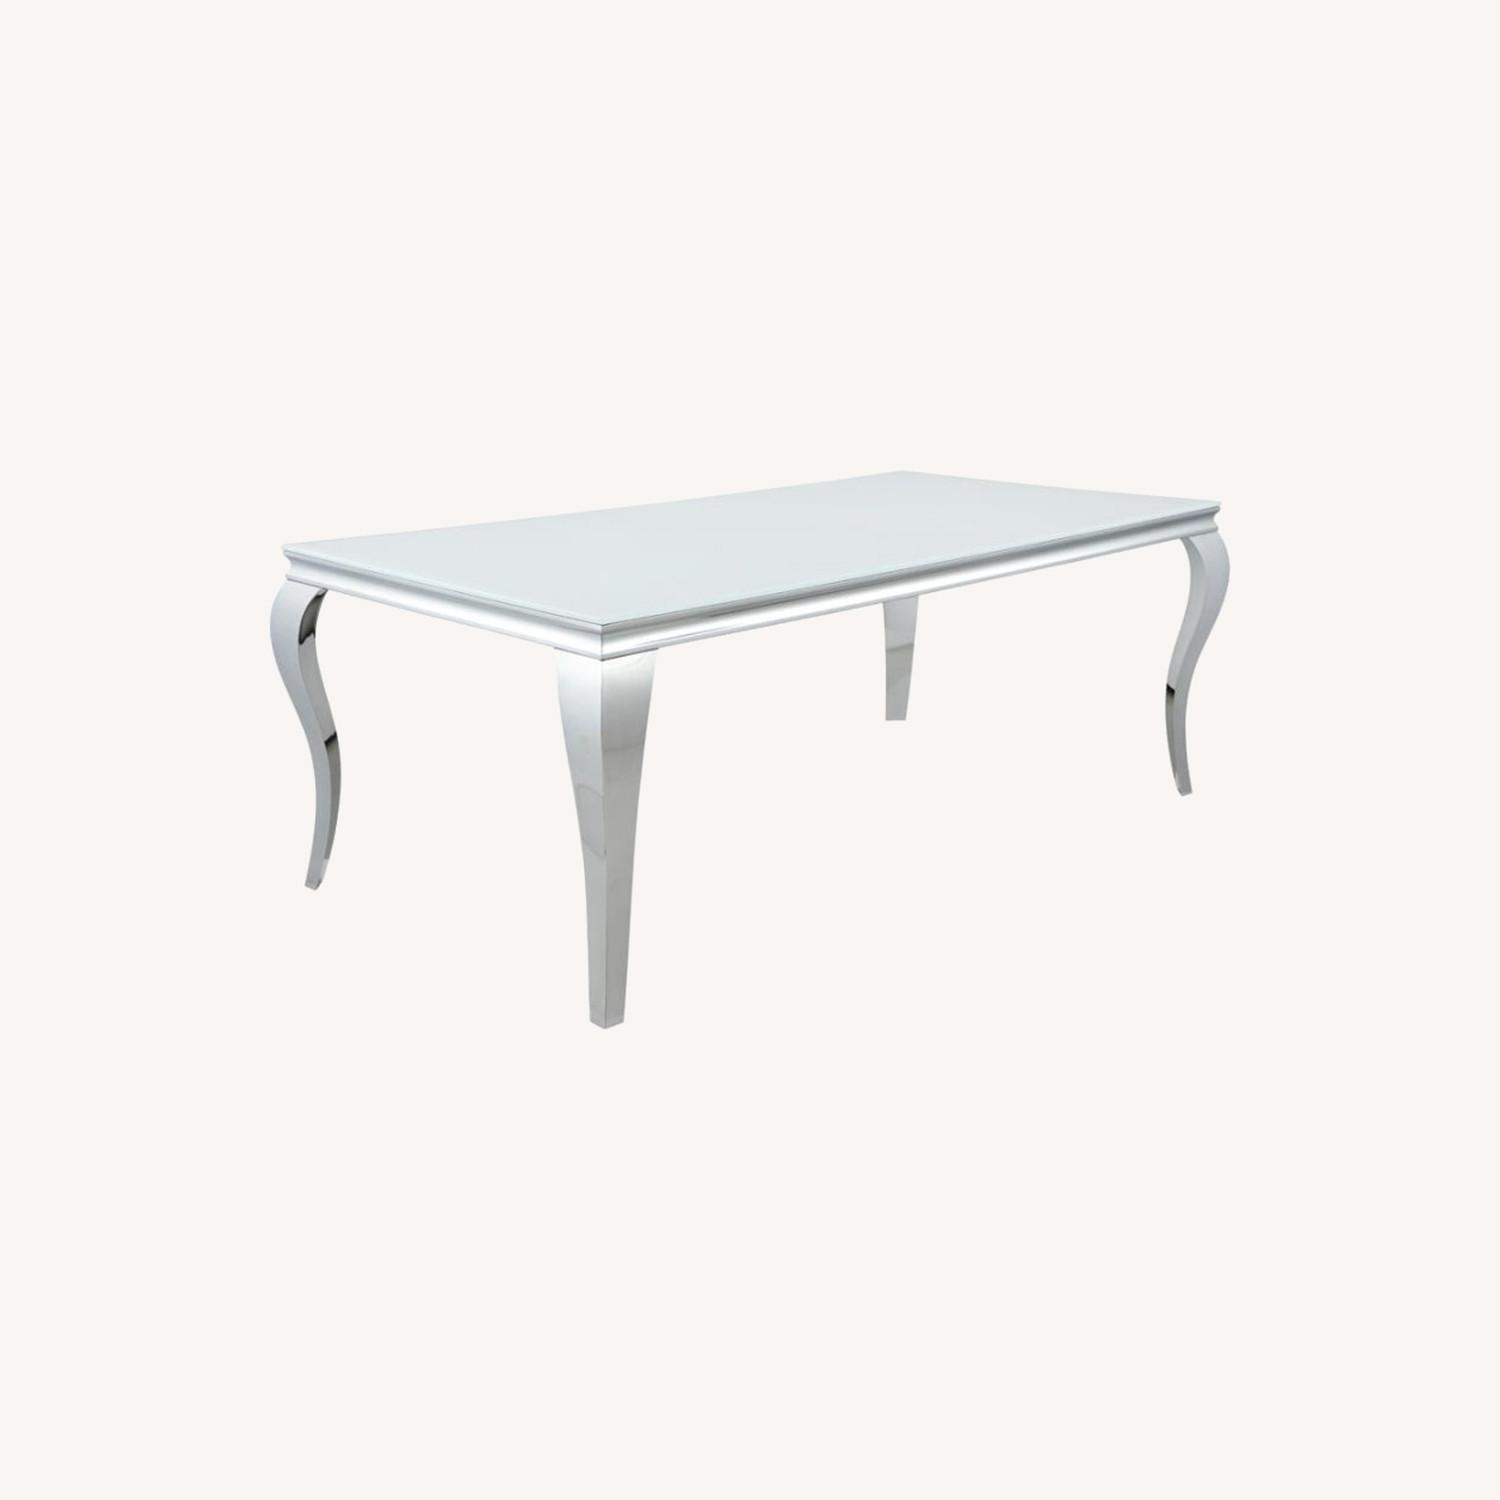 Dining Table In Chrome Base Finish W/ White Top - image-5